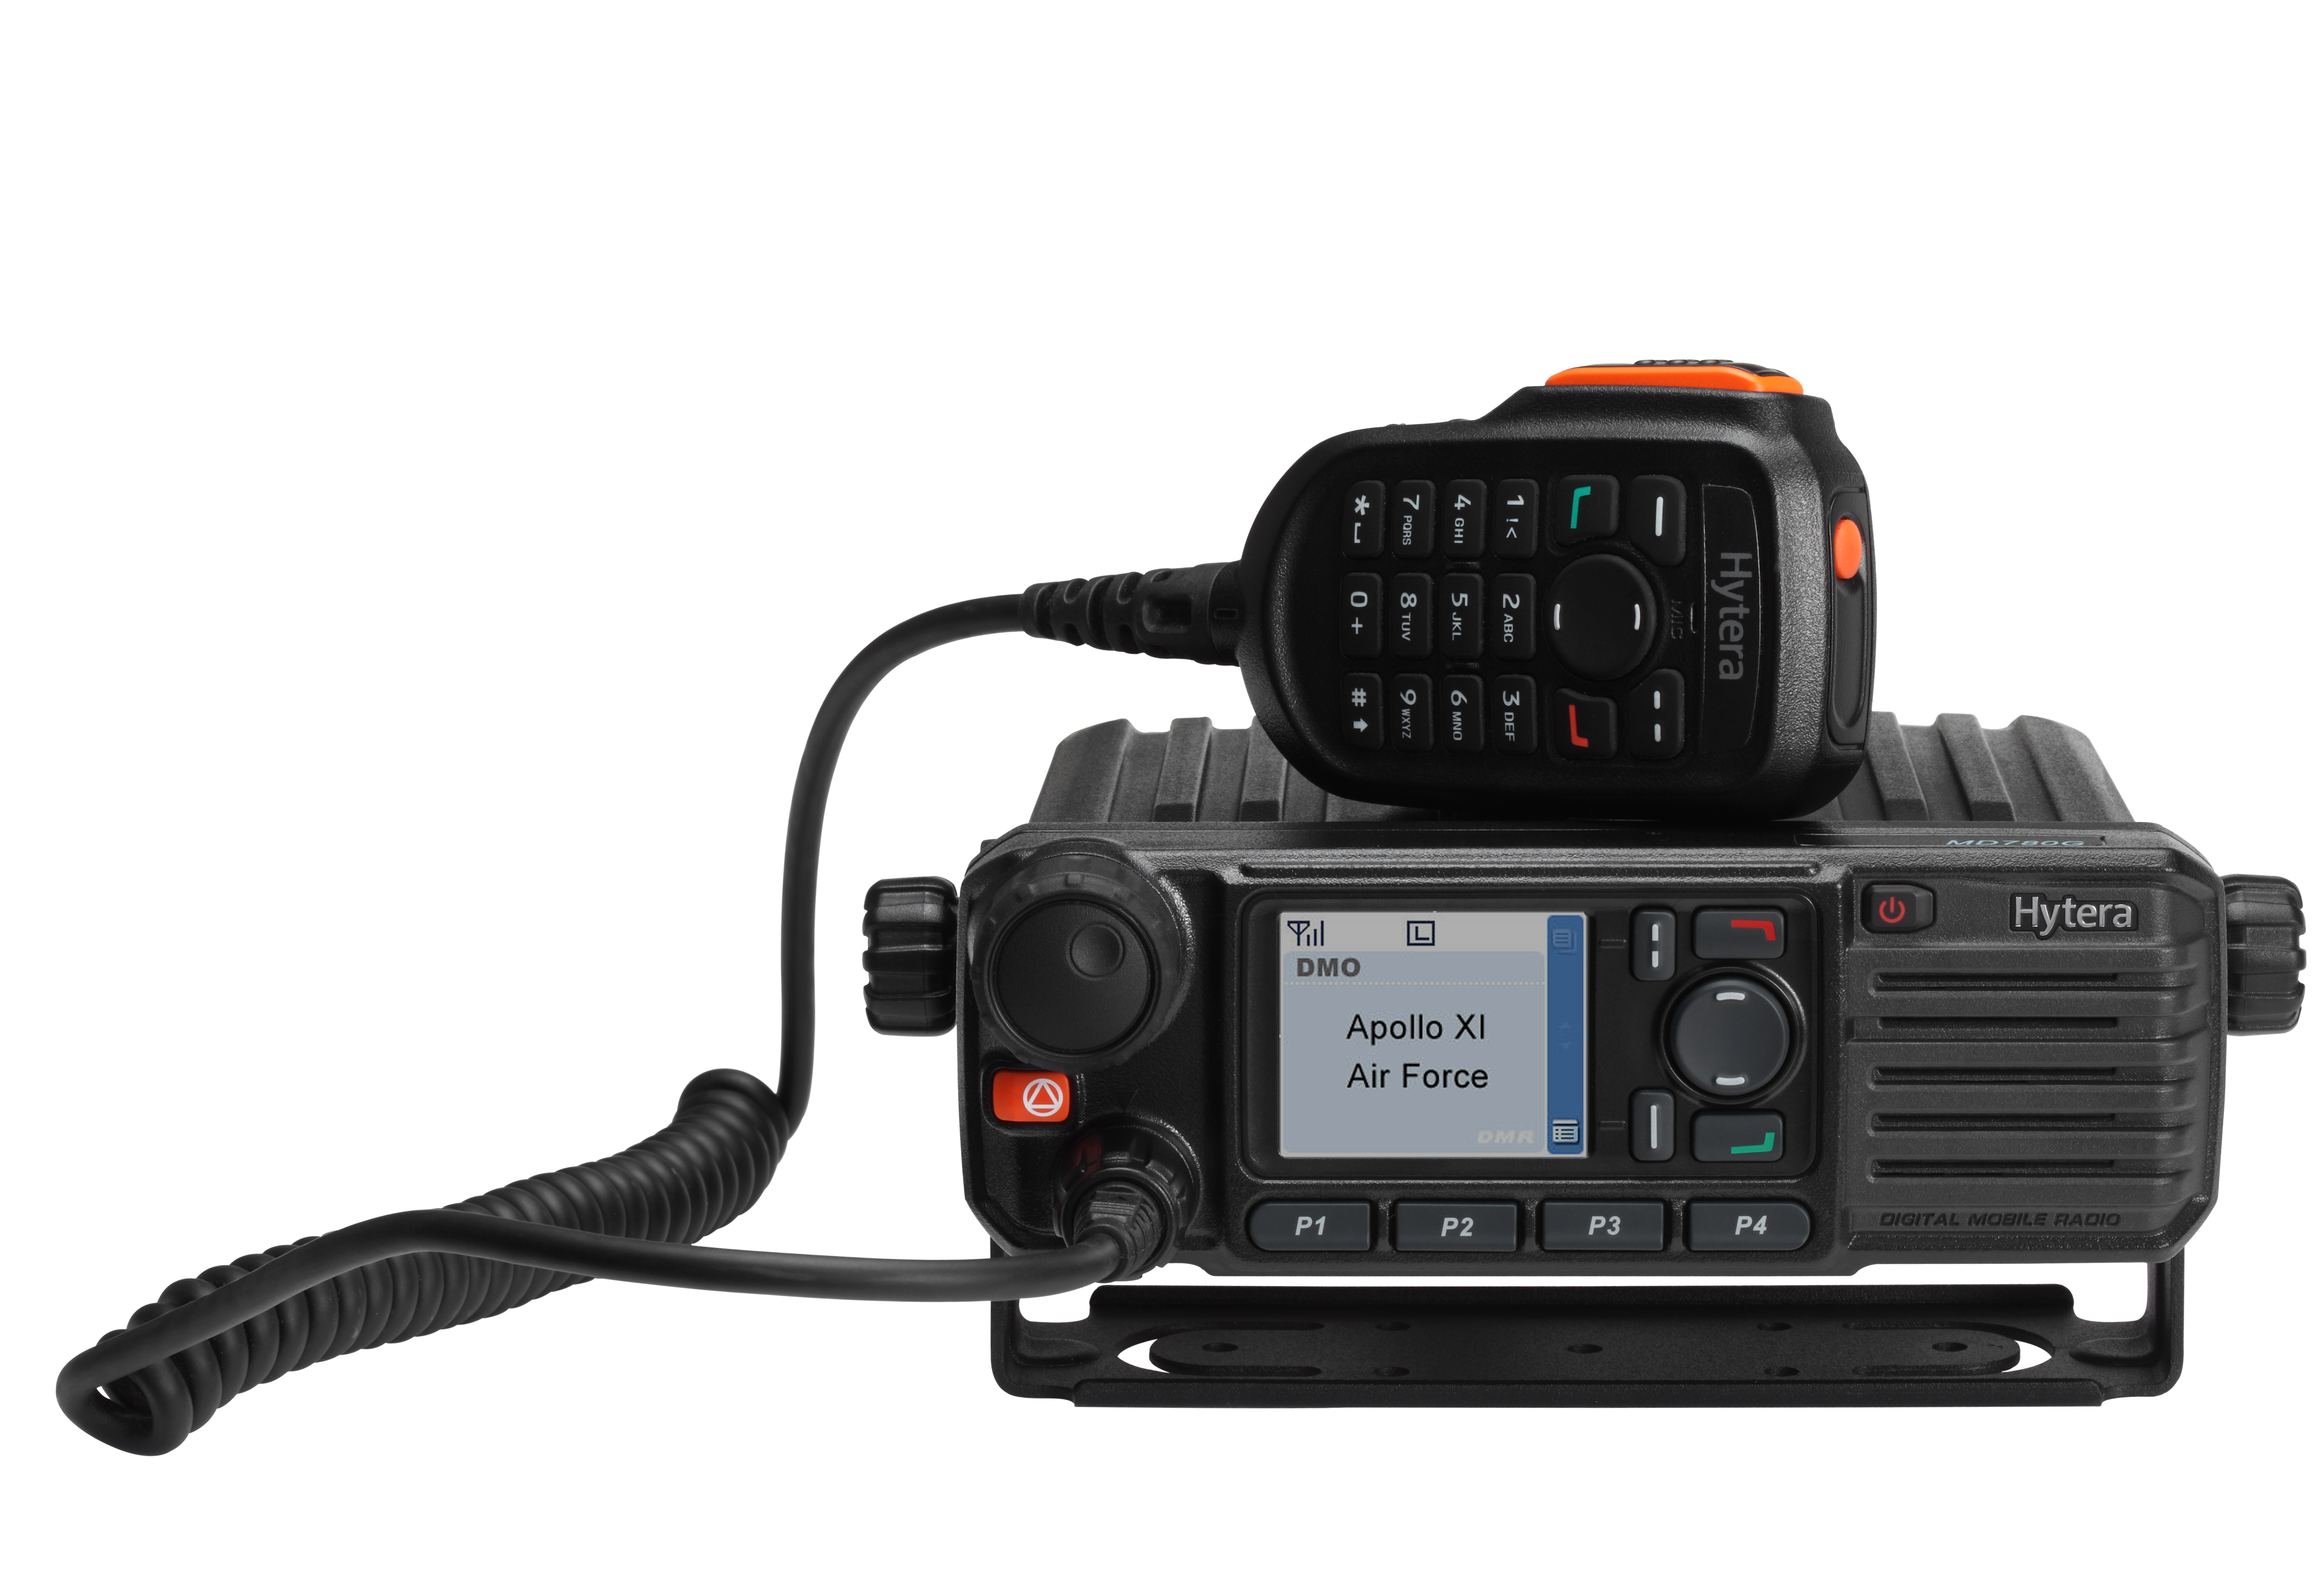 MD782i digital DMR trunking two-way radio Fort McMurray